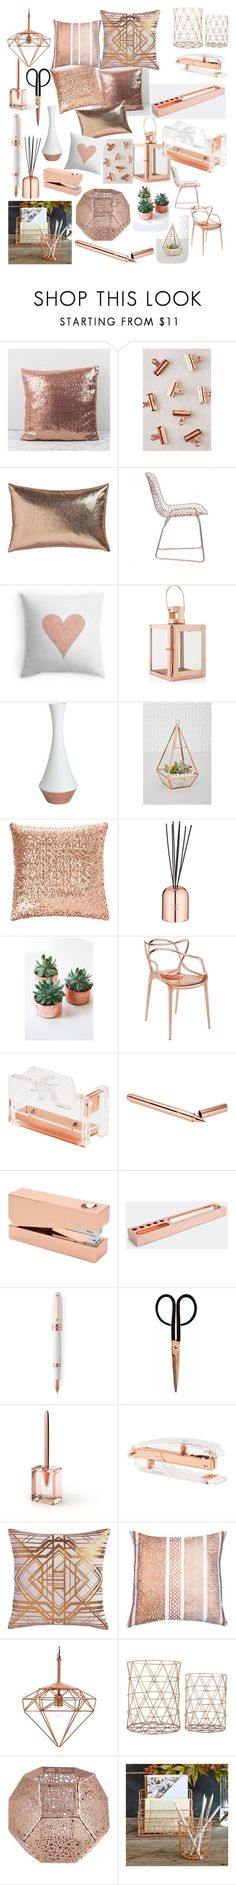 """""""Copper finishes"""" by caitlin1d23-07-10 ❤ liked on Polyvore featuring interior, interiors, interior design, home, home decor, interior decorating, Urban Outfitters, CB2, Zuo and Pillow Decor"""